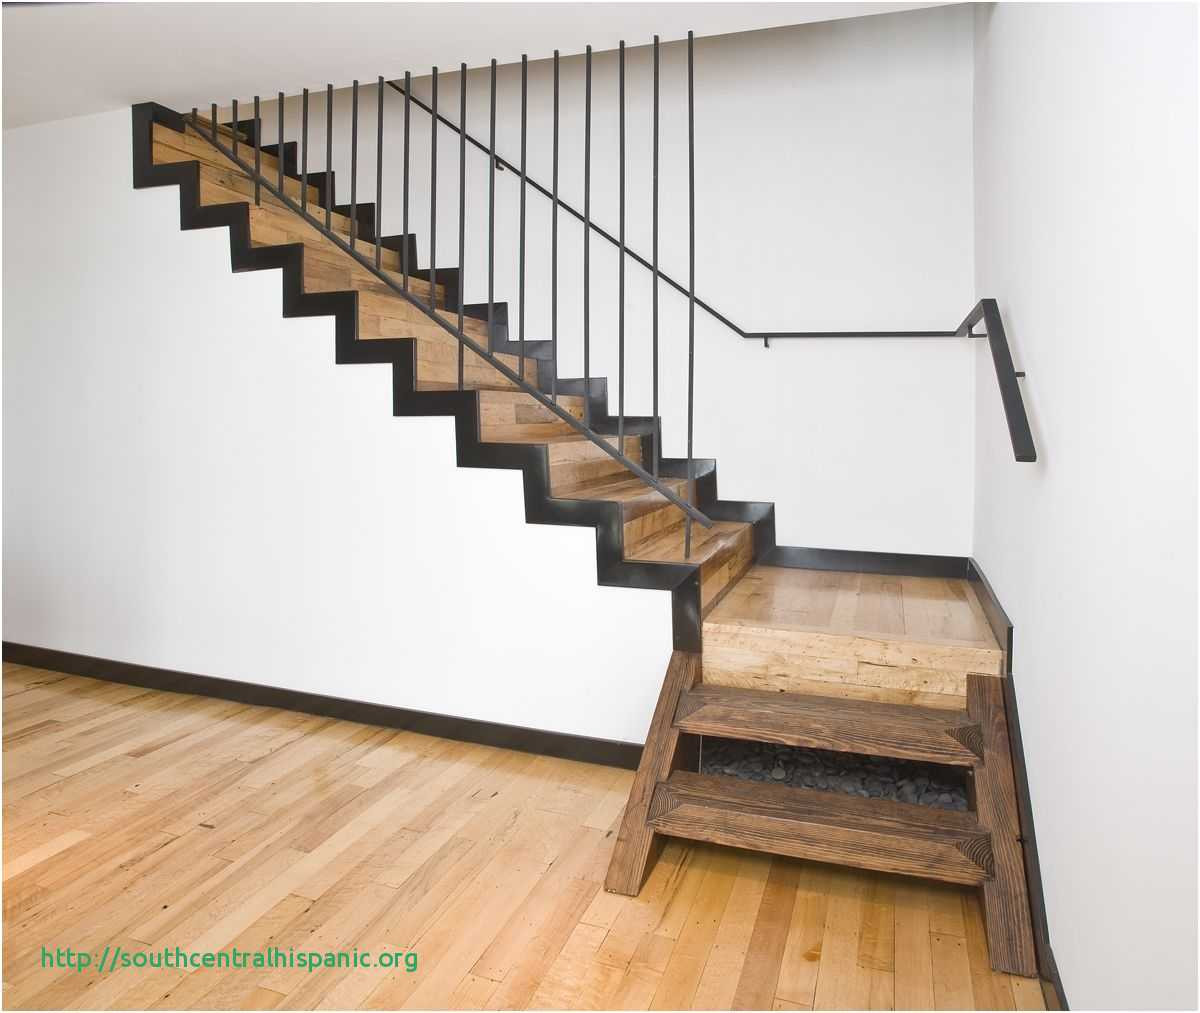 how to install hardwood floors lowes of how to put in laminate flooring a‰lagant laminate wood flooring lowes regarding how to put in laminate flooring inspirant how to install laminate flooring stairs with railing stock